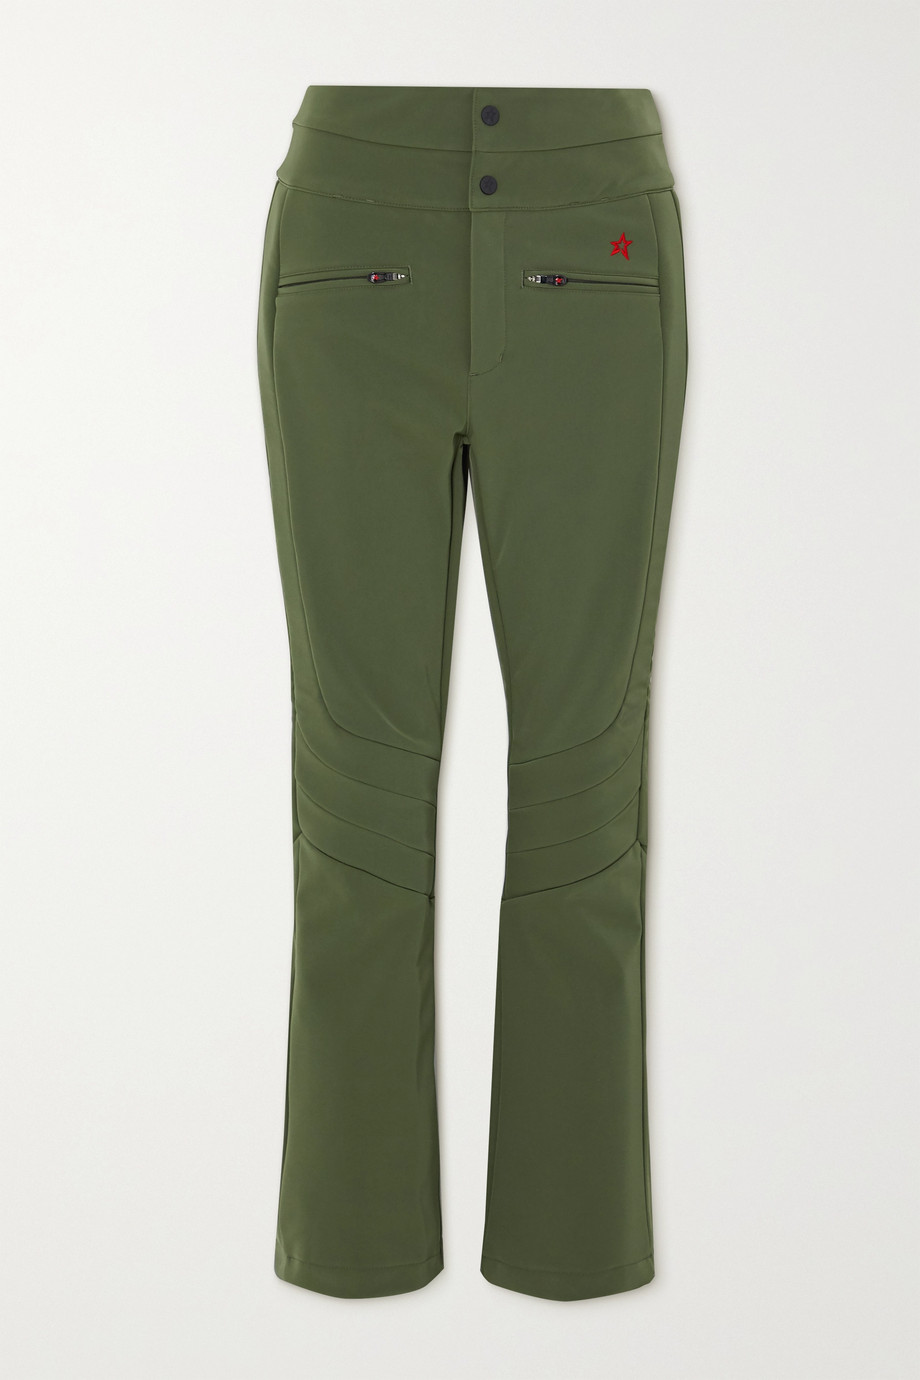 Perfect Moment Aurora high-rise flared ski pants